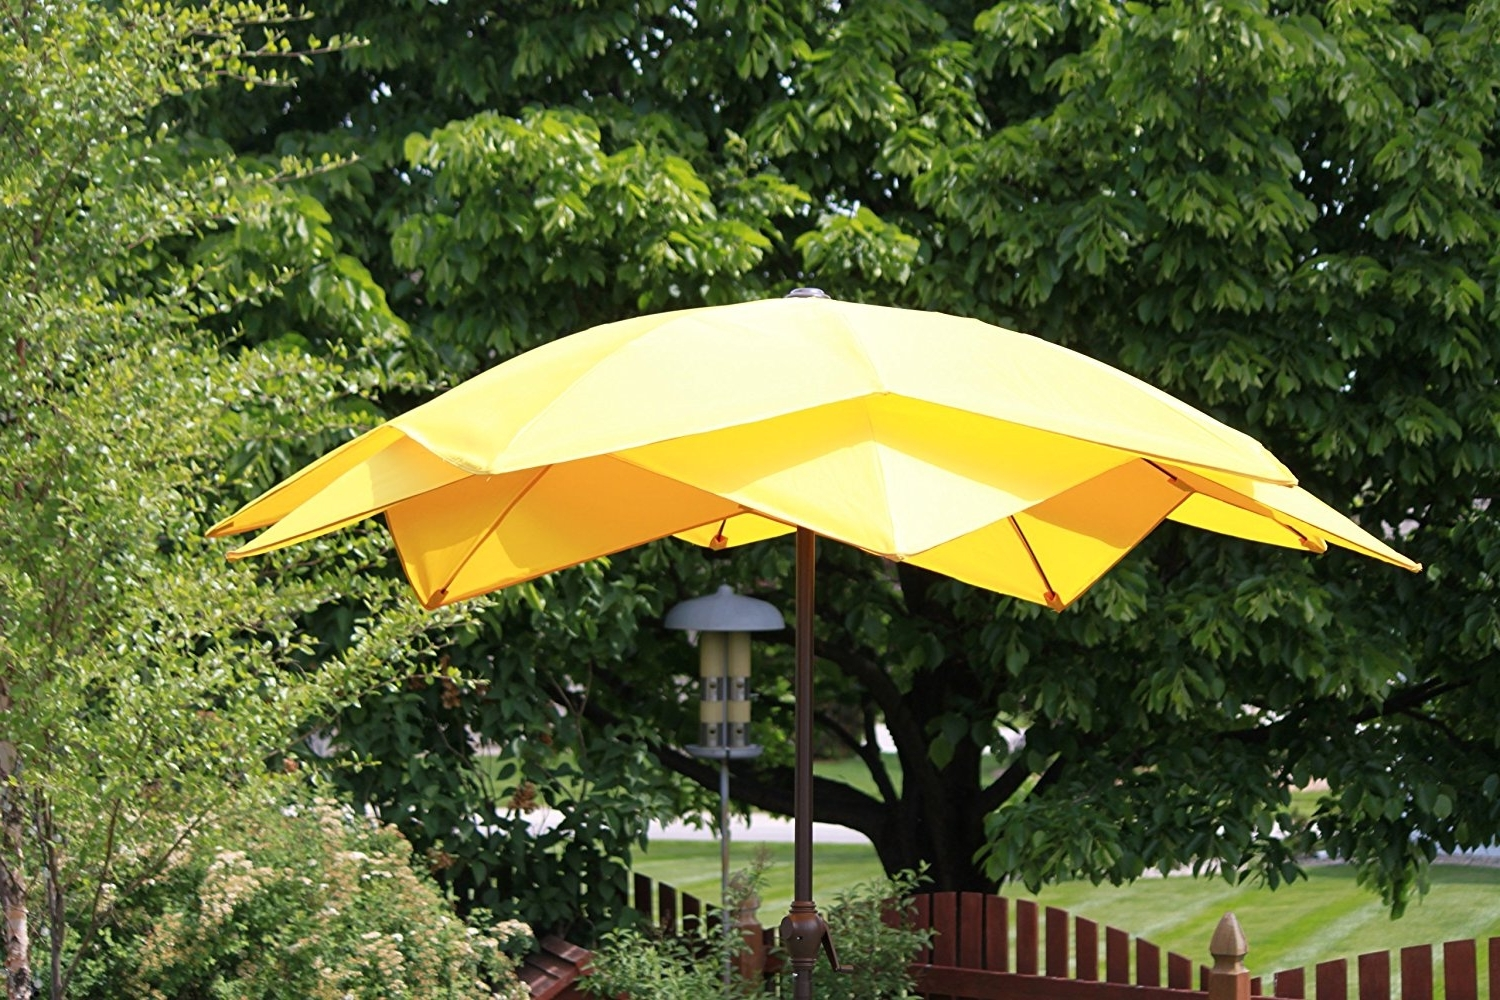 Elegant Wind Resistant Patio Umbrella Uk F36X On Most Luxury Small Throughout Preferred Patio Umbrellas For Windy Locations (Gallery 8 of 20)